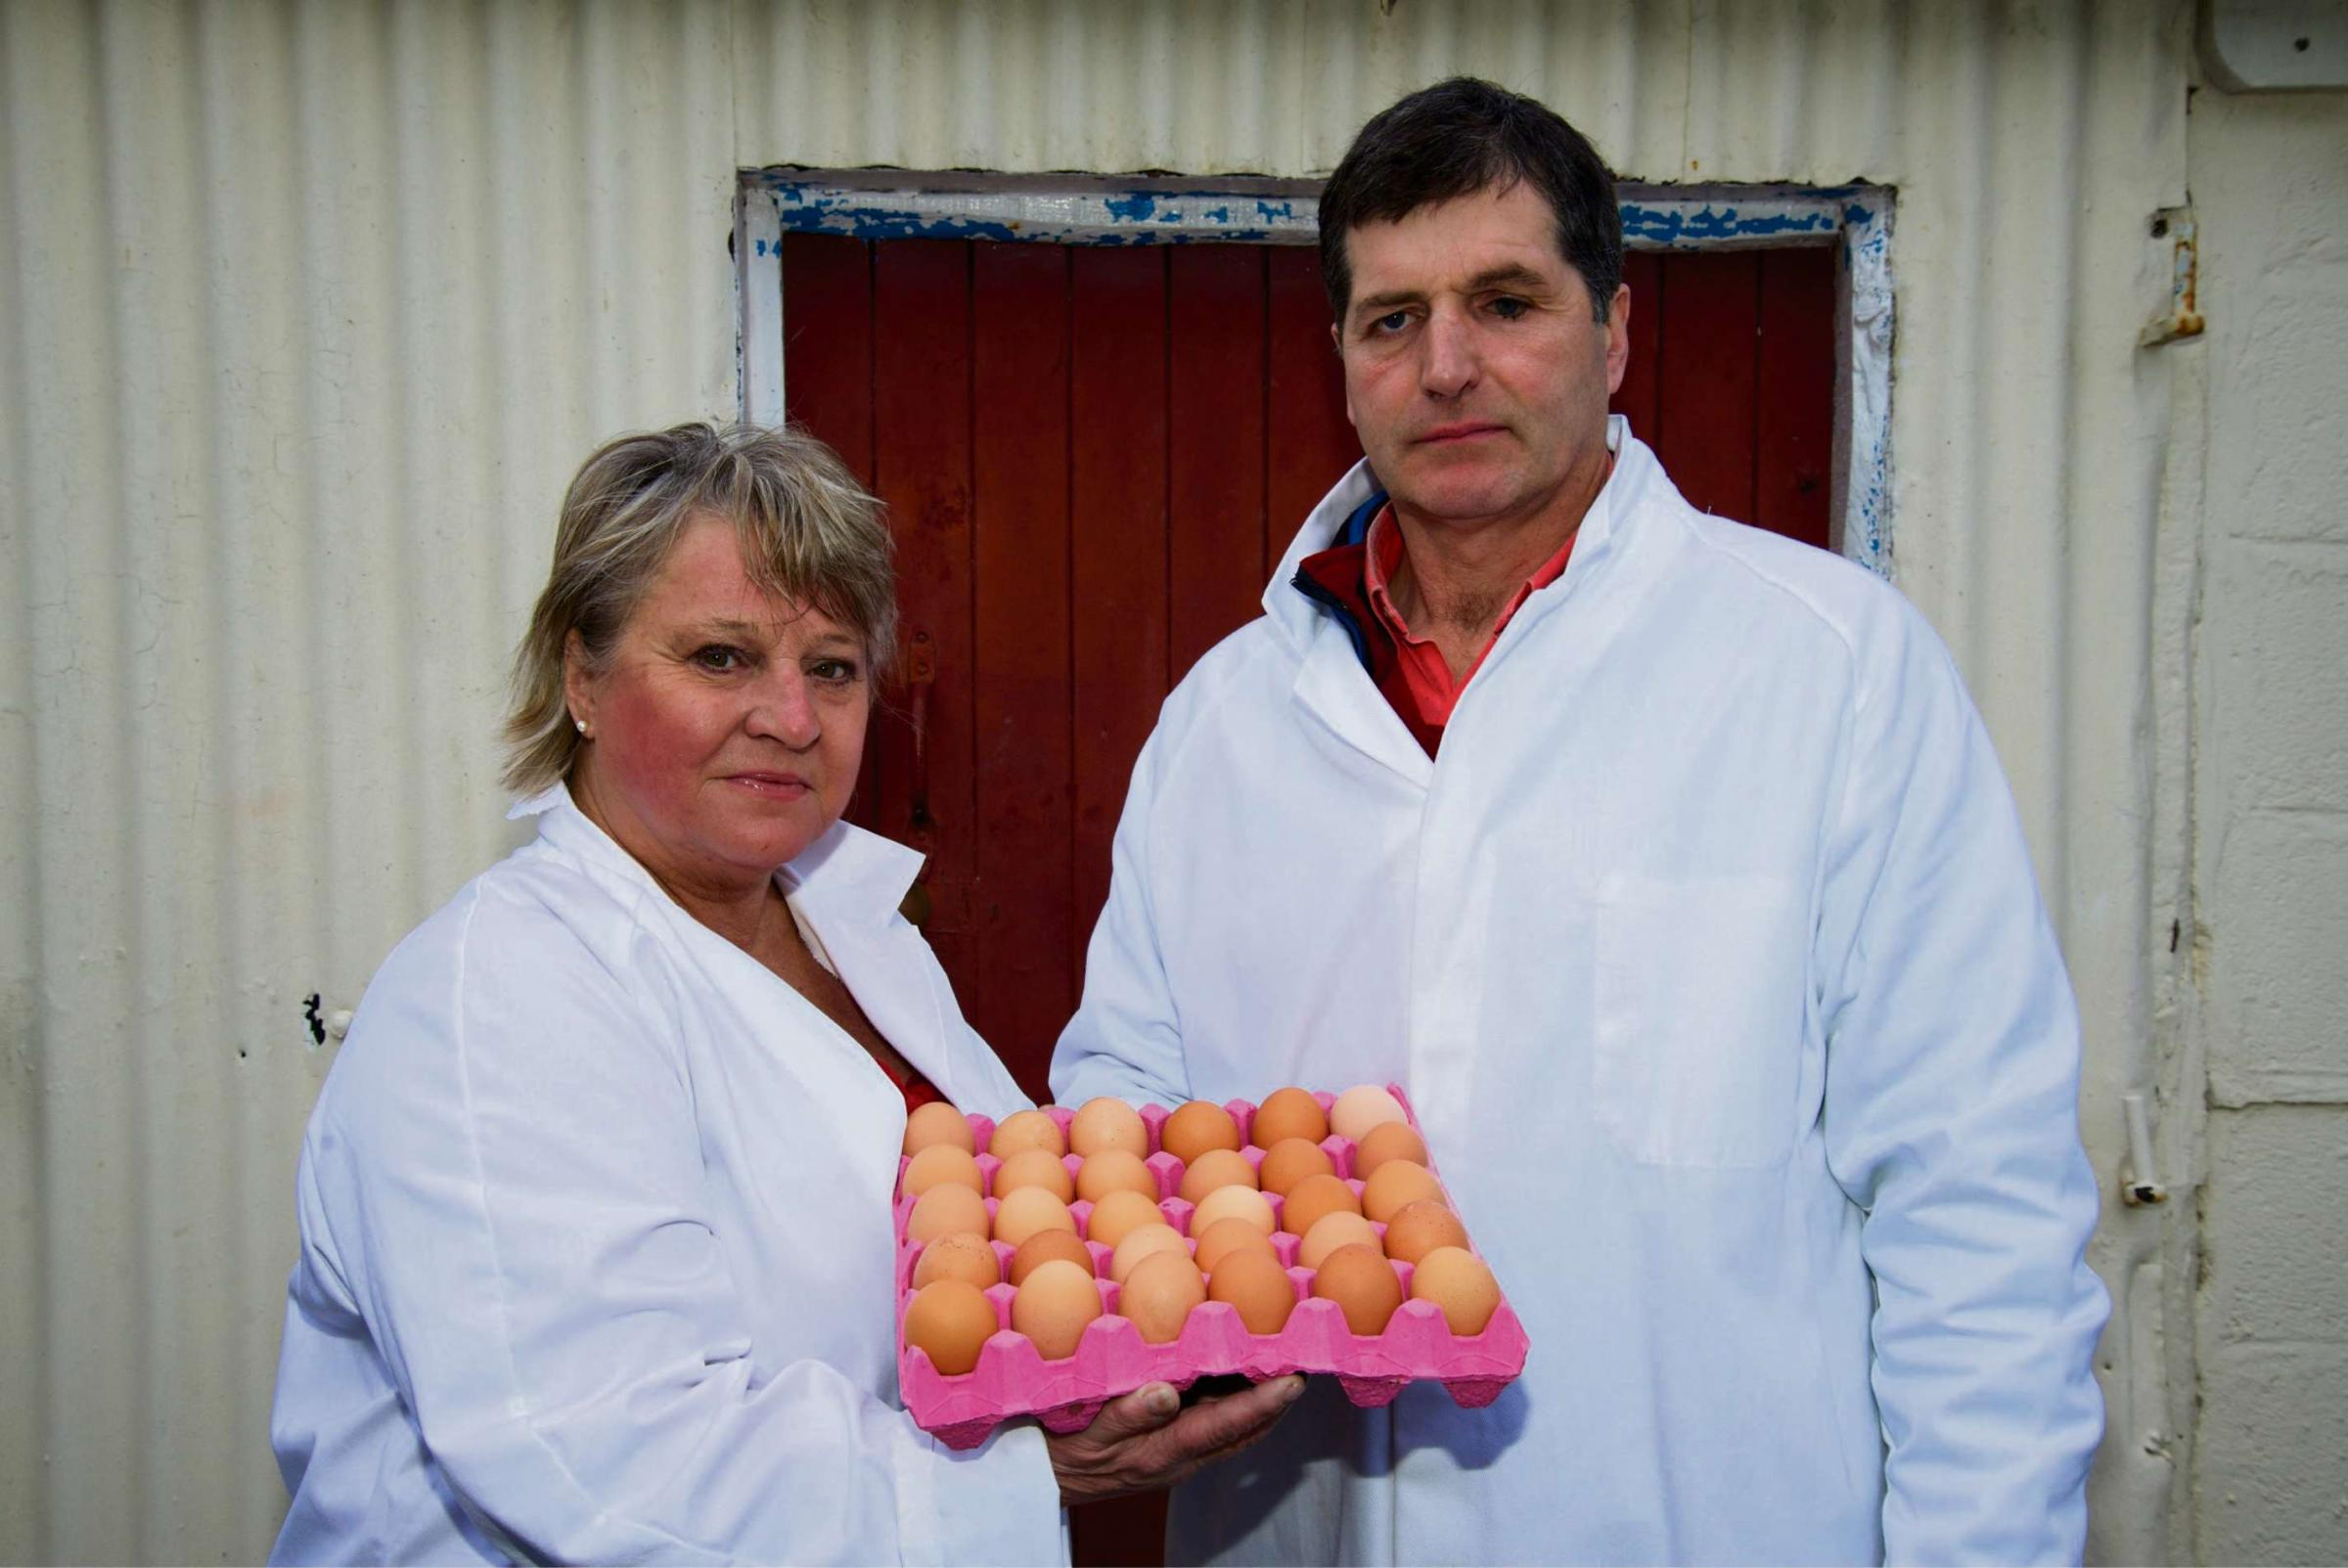 Egg packing company fined over food hygiene offences